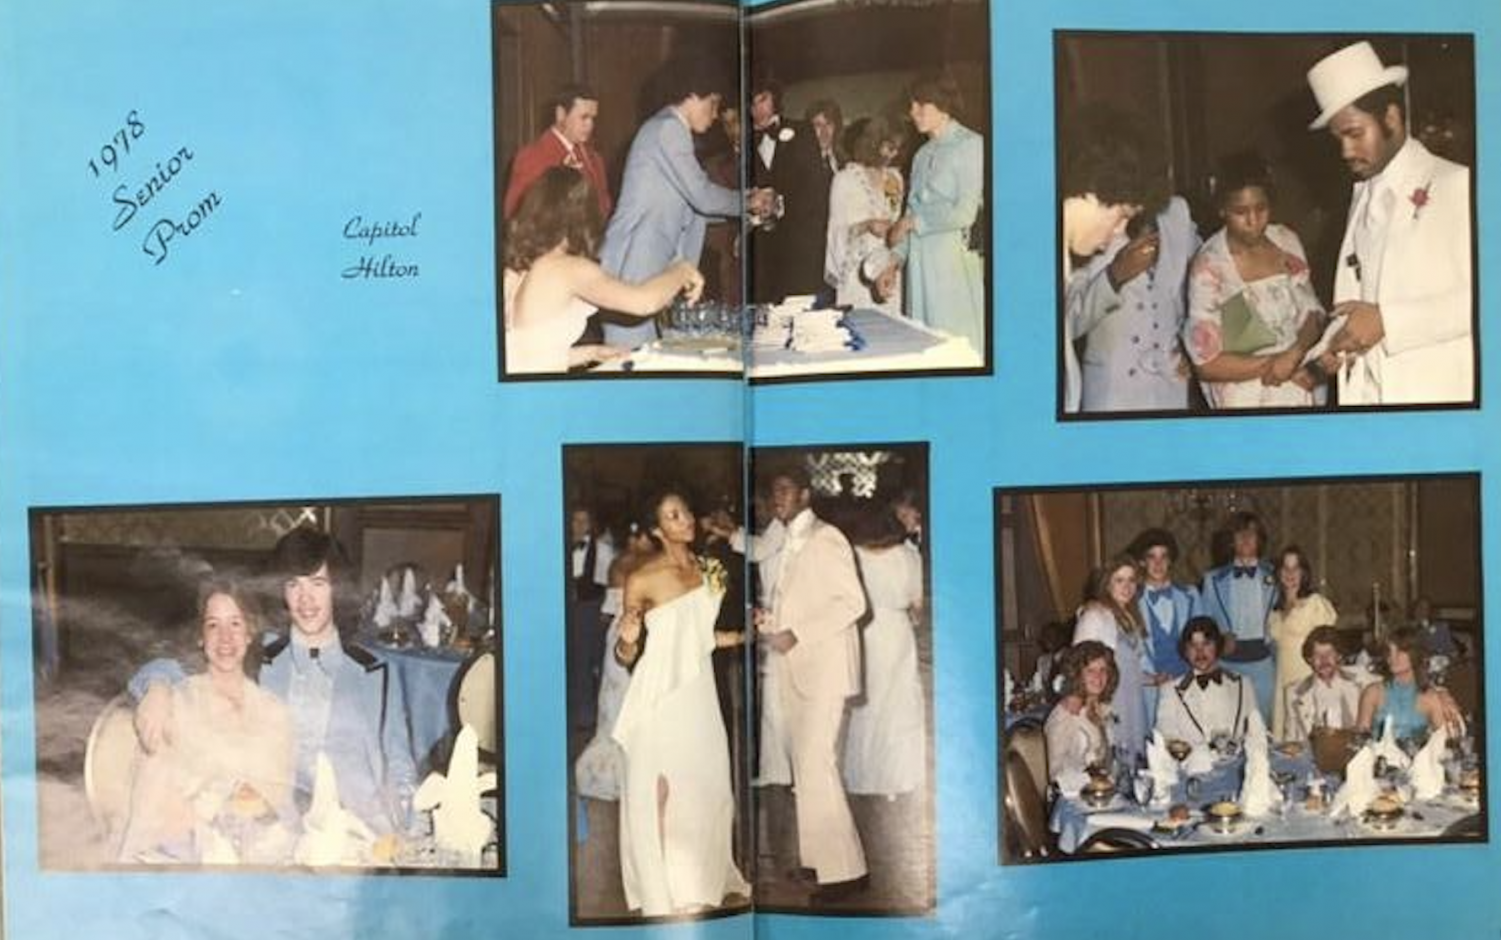 Prom Photos from the 1978 Eleanor Roosevelt Senior High School Yearbook